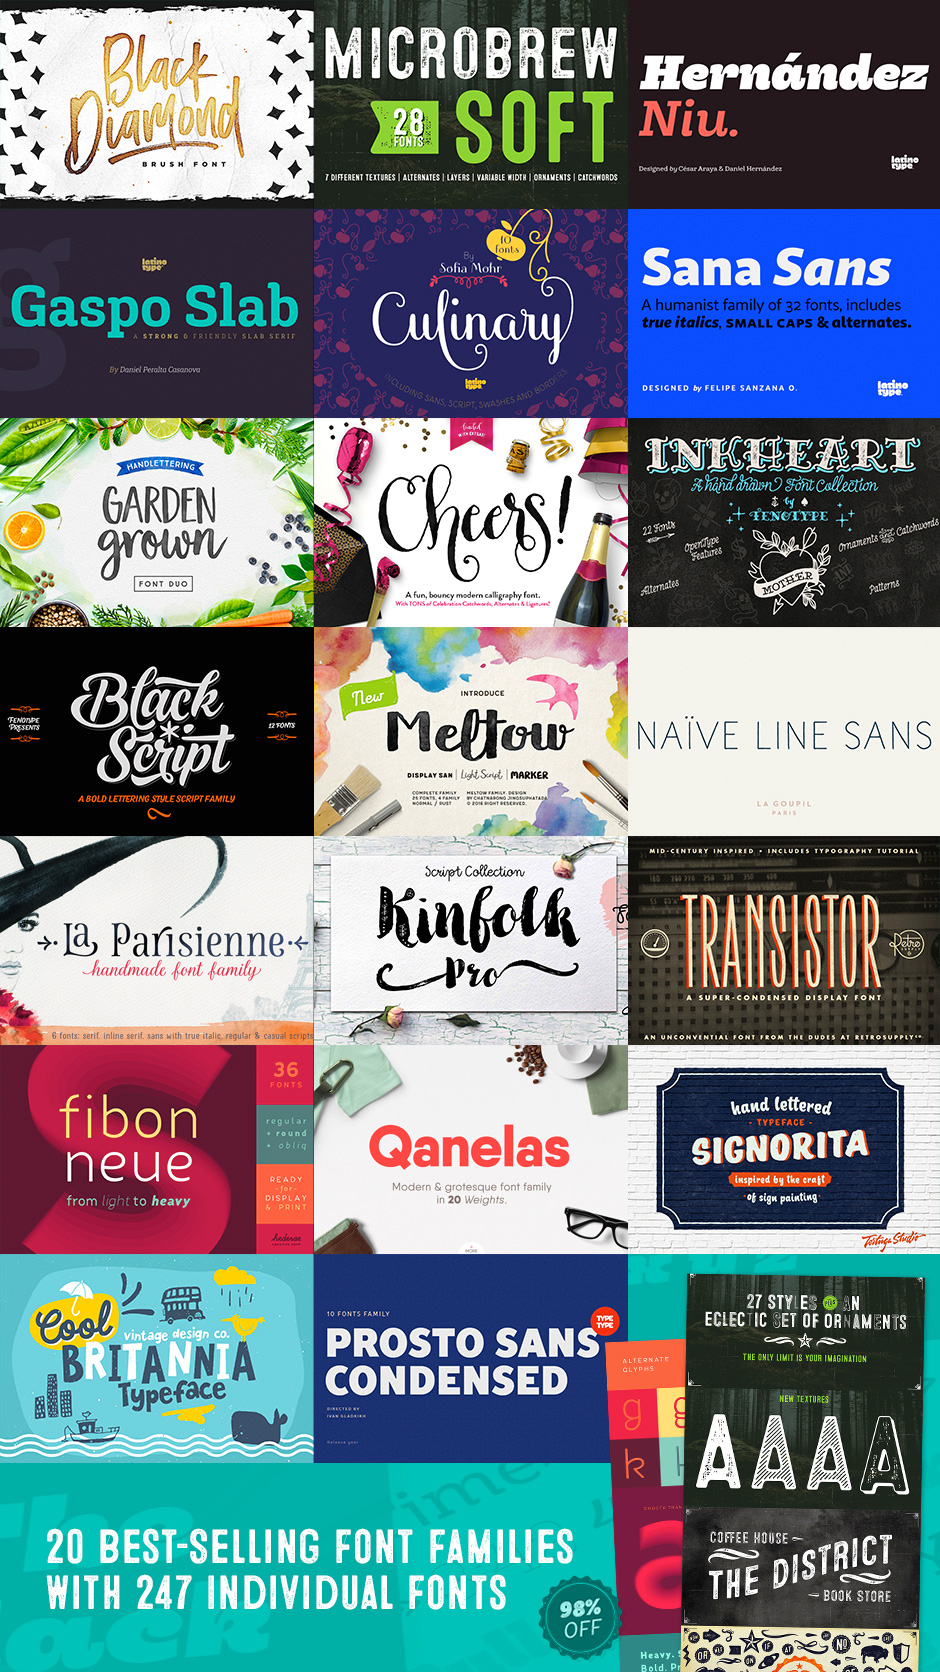 20 Best-Selling Font Families